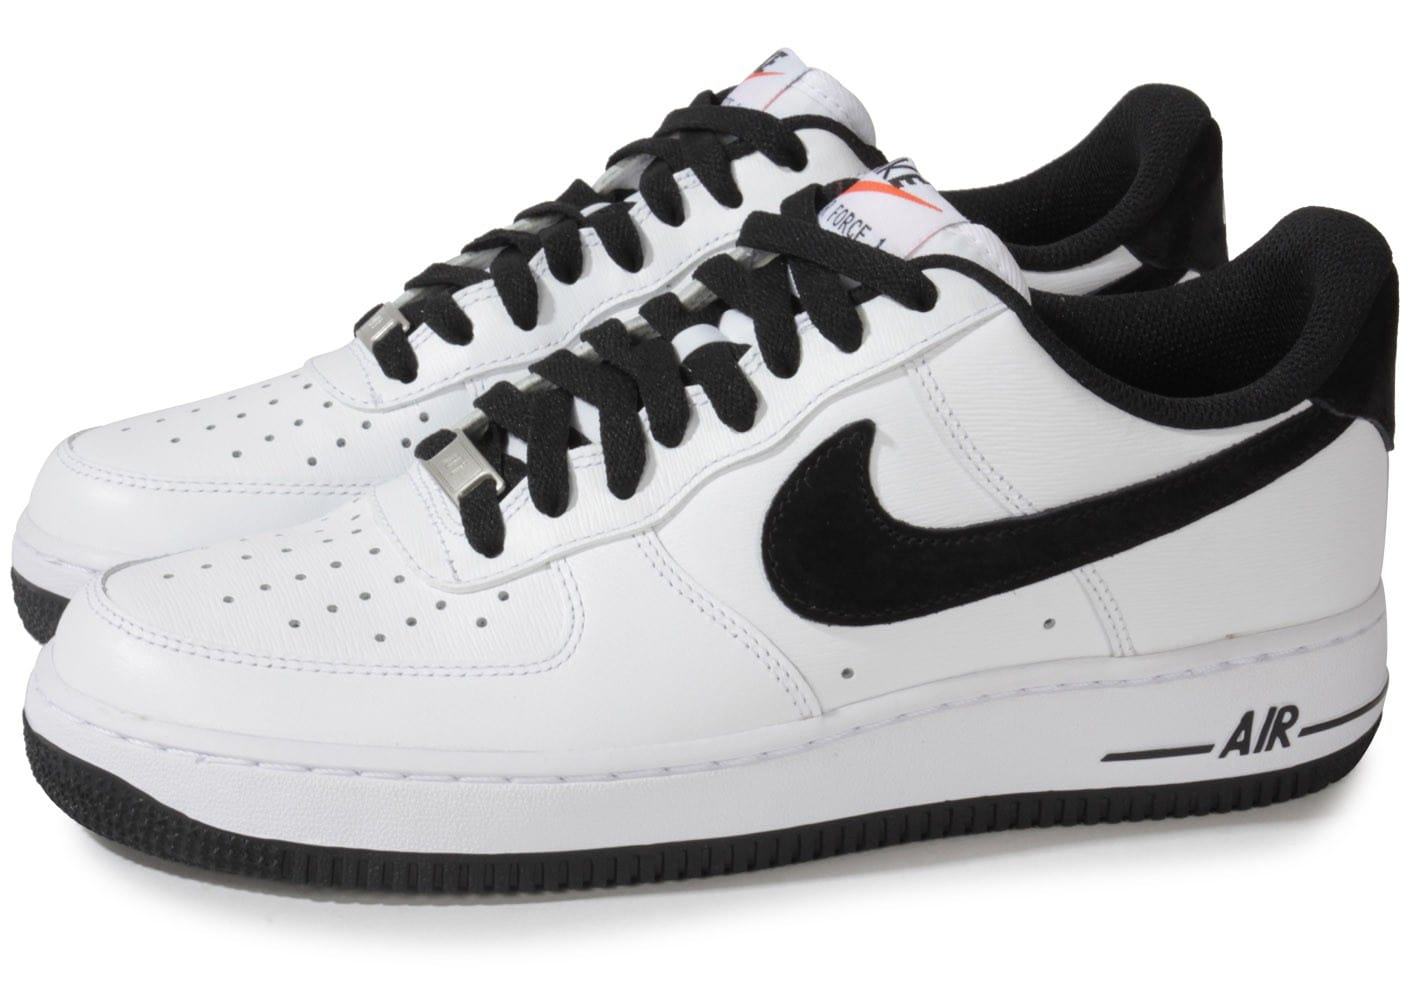 nike air force 1 blanche et noire chaussures homme. Black Bedroom Furniture Sets. Home Design Ideas